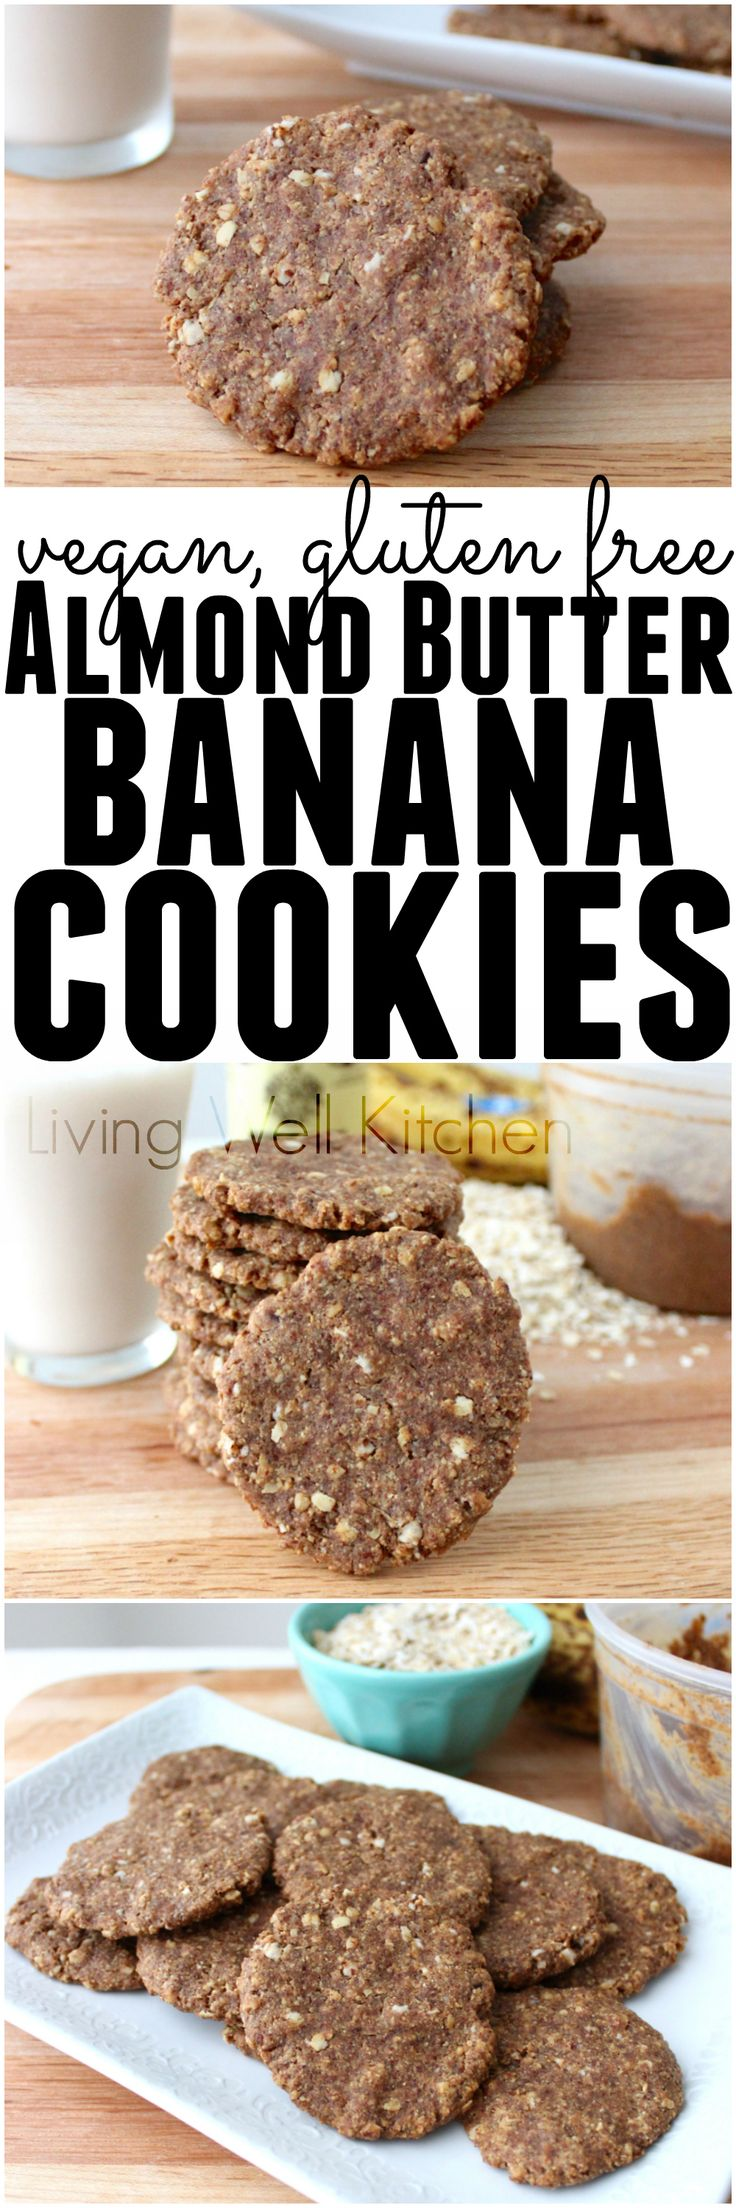 Gluten free, vegan Almond Butter Banana Cookie recipe from @memeinge. Five ingredient cookies with no added sugar, butter, or oil. They satisfy your sweet tooth without making you feel guilty. These aren't just for dessert; you can eat them for breakfast, too!